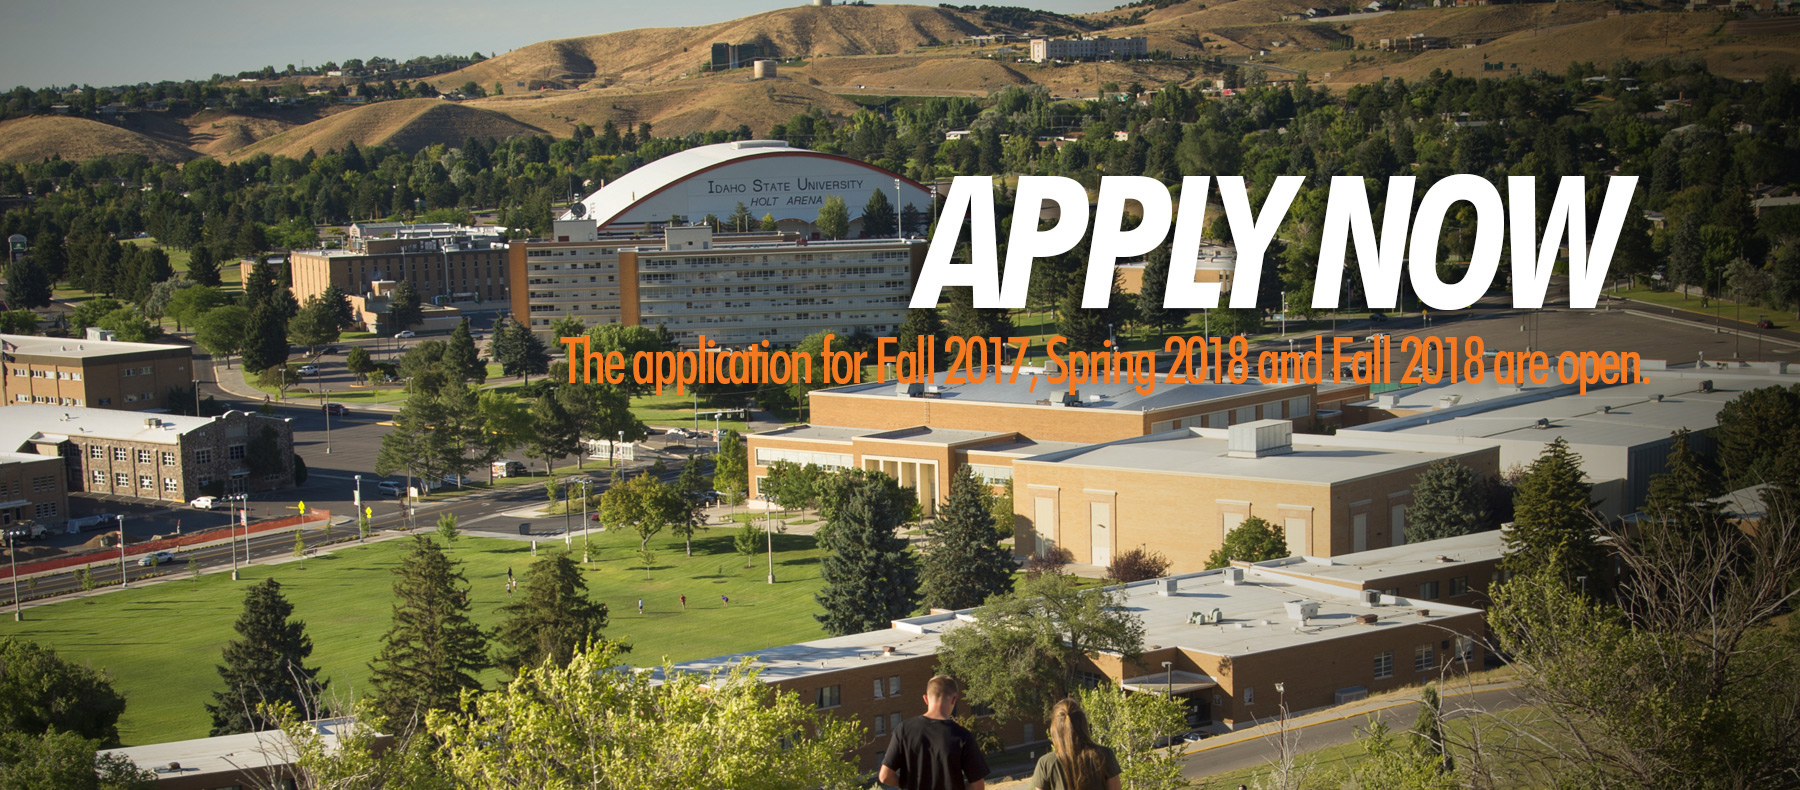 Apply now. The application for Fall 2017, Spring 2018 and Fall 2018 are open.